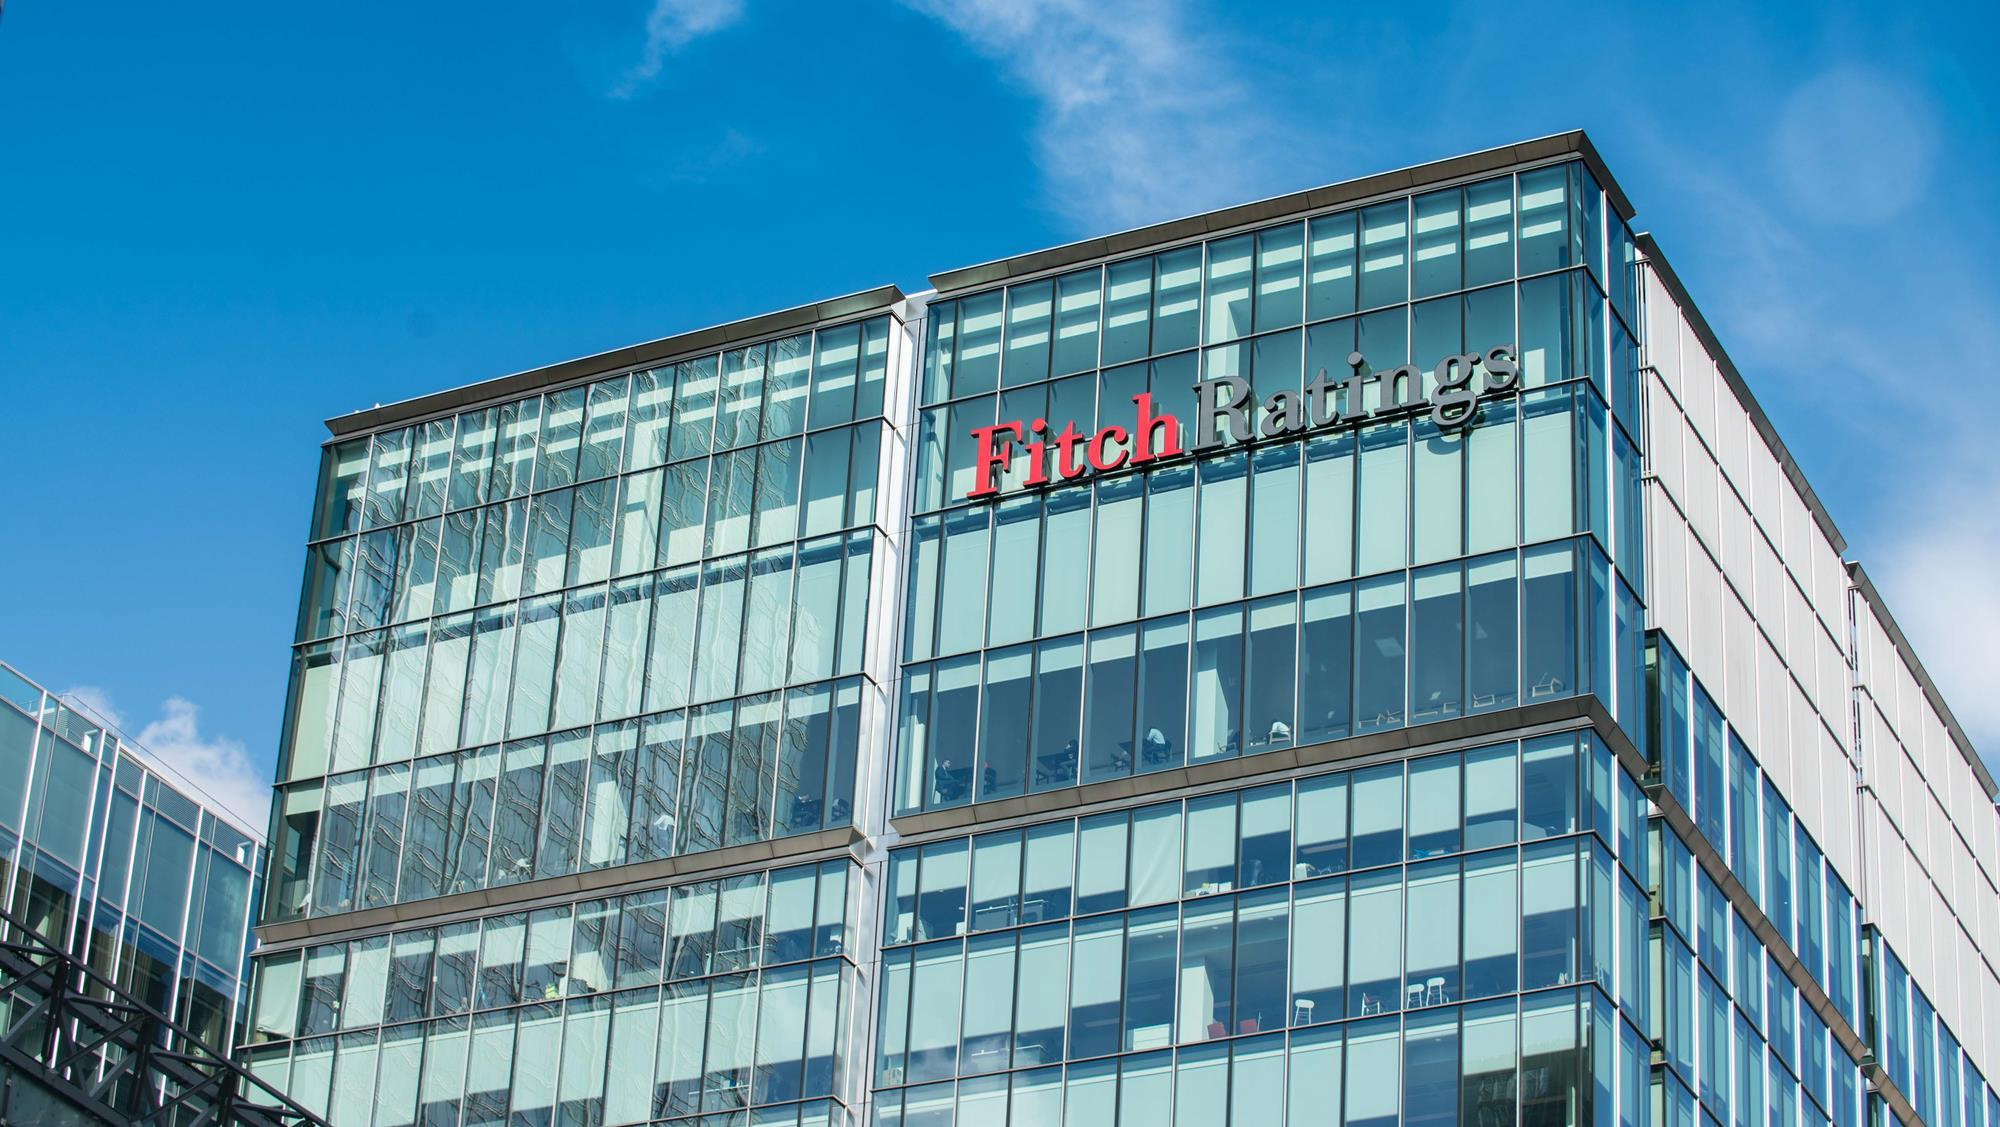 Fitch Ratings building